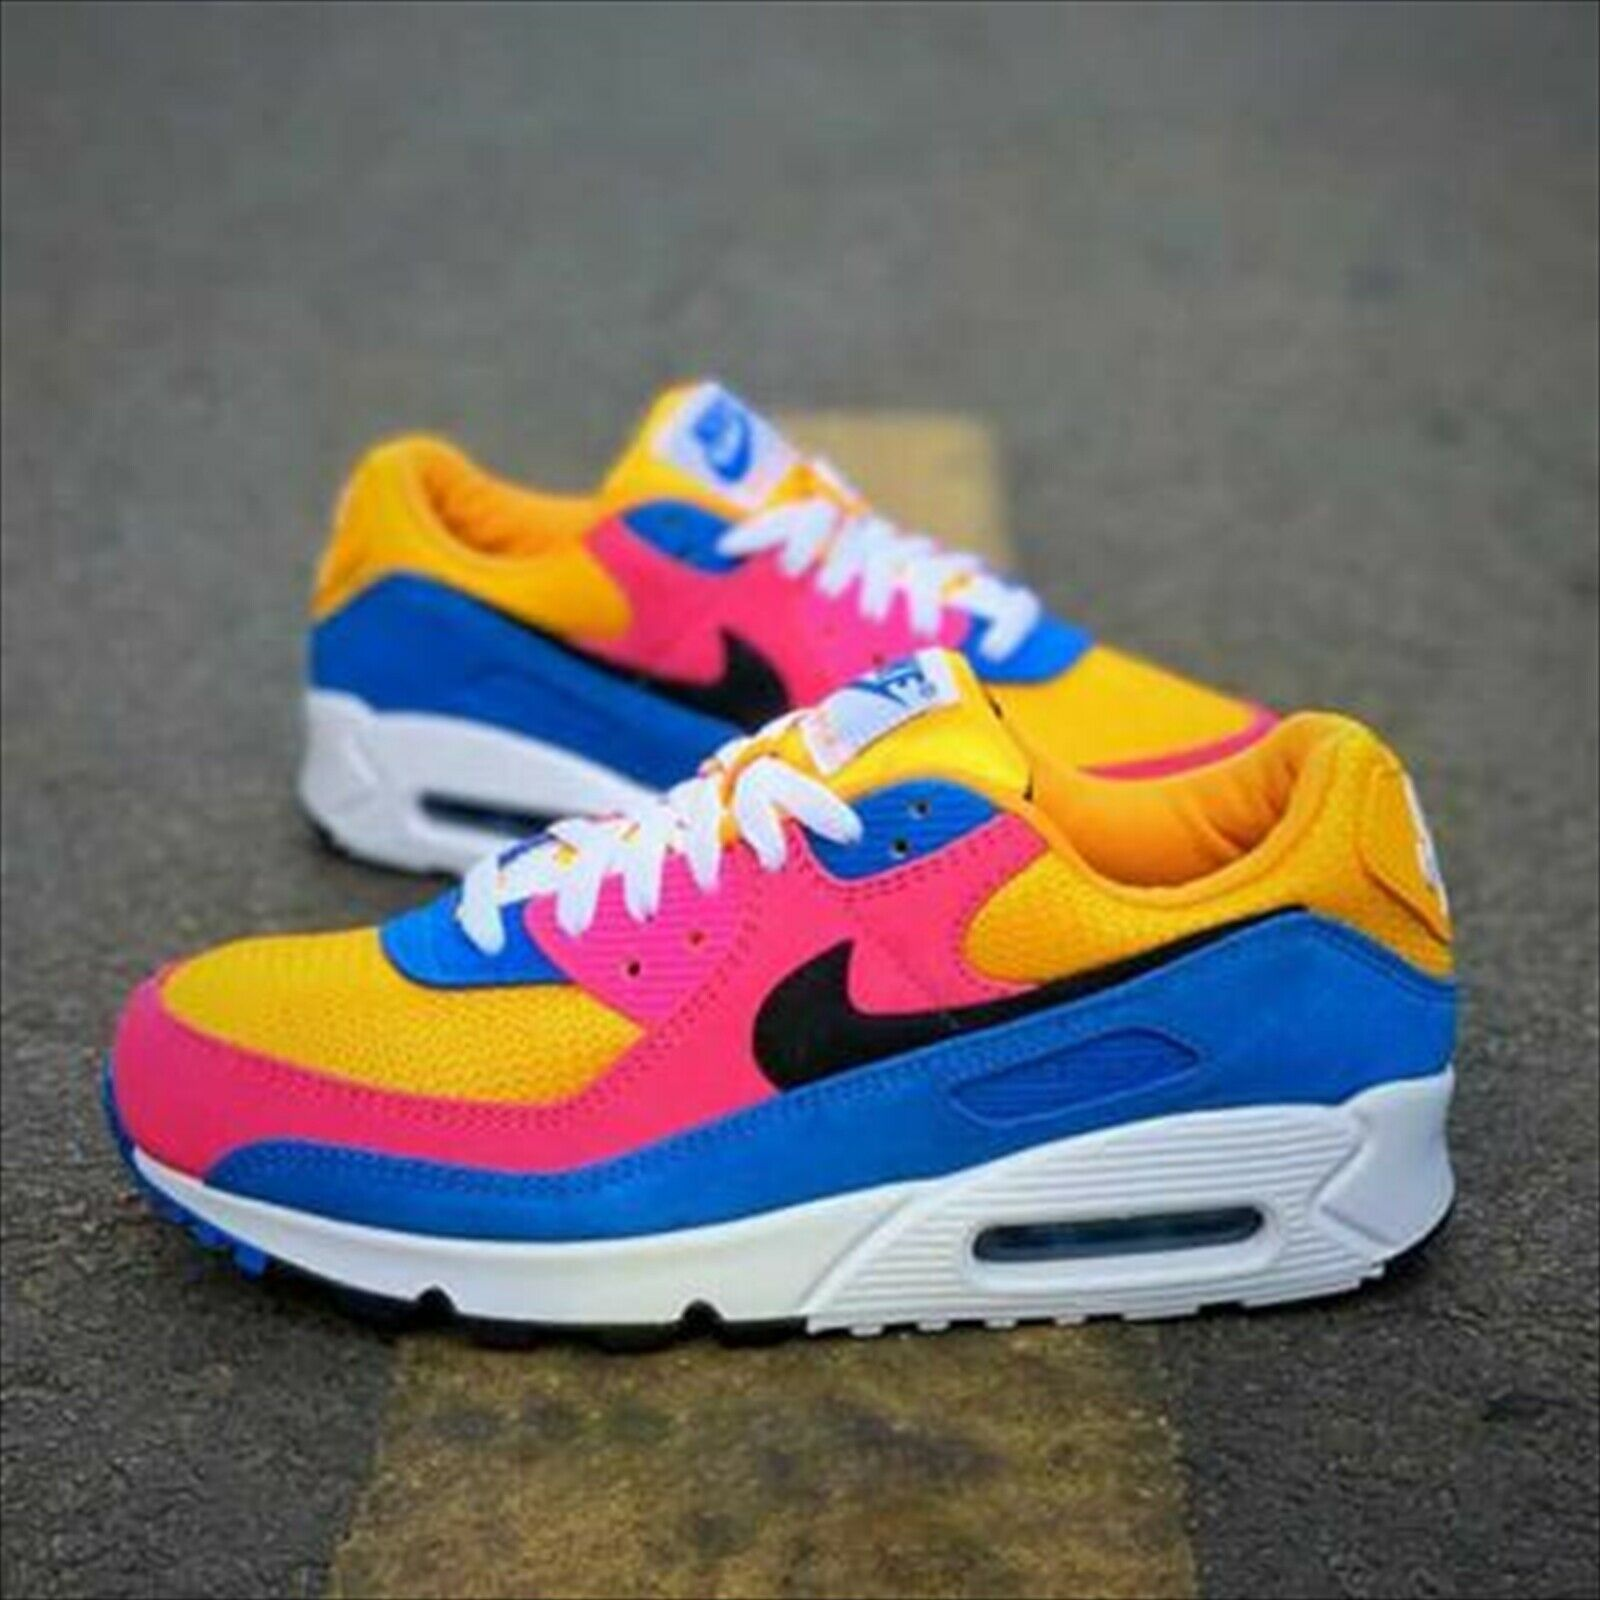 Size 12 - Nike Air Max 90 Multi-Color 2020 for sale online   eBay